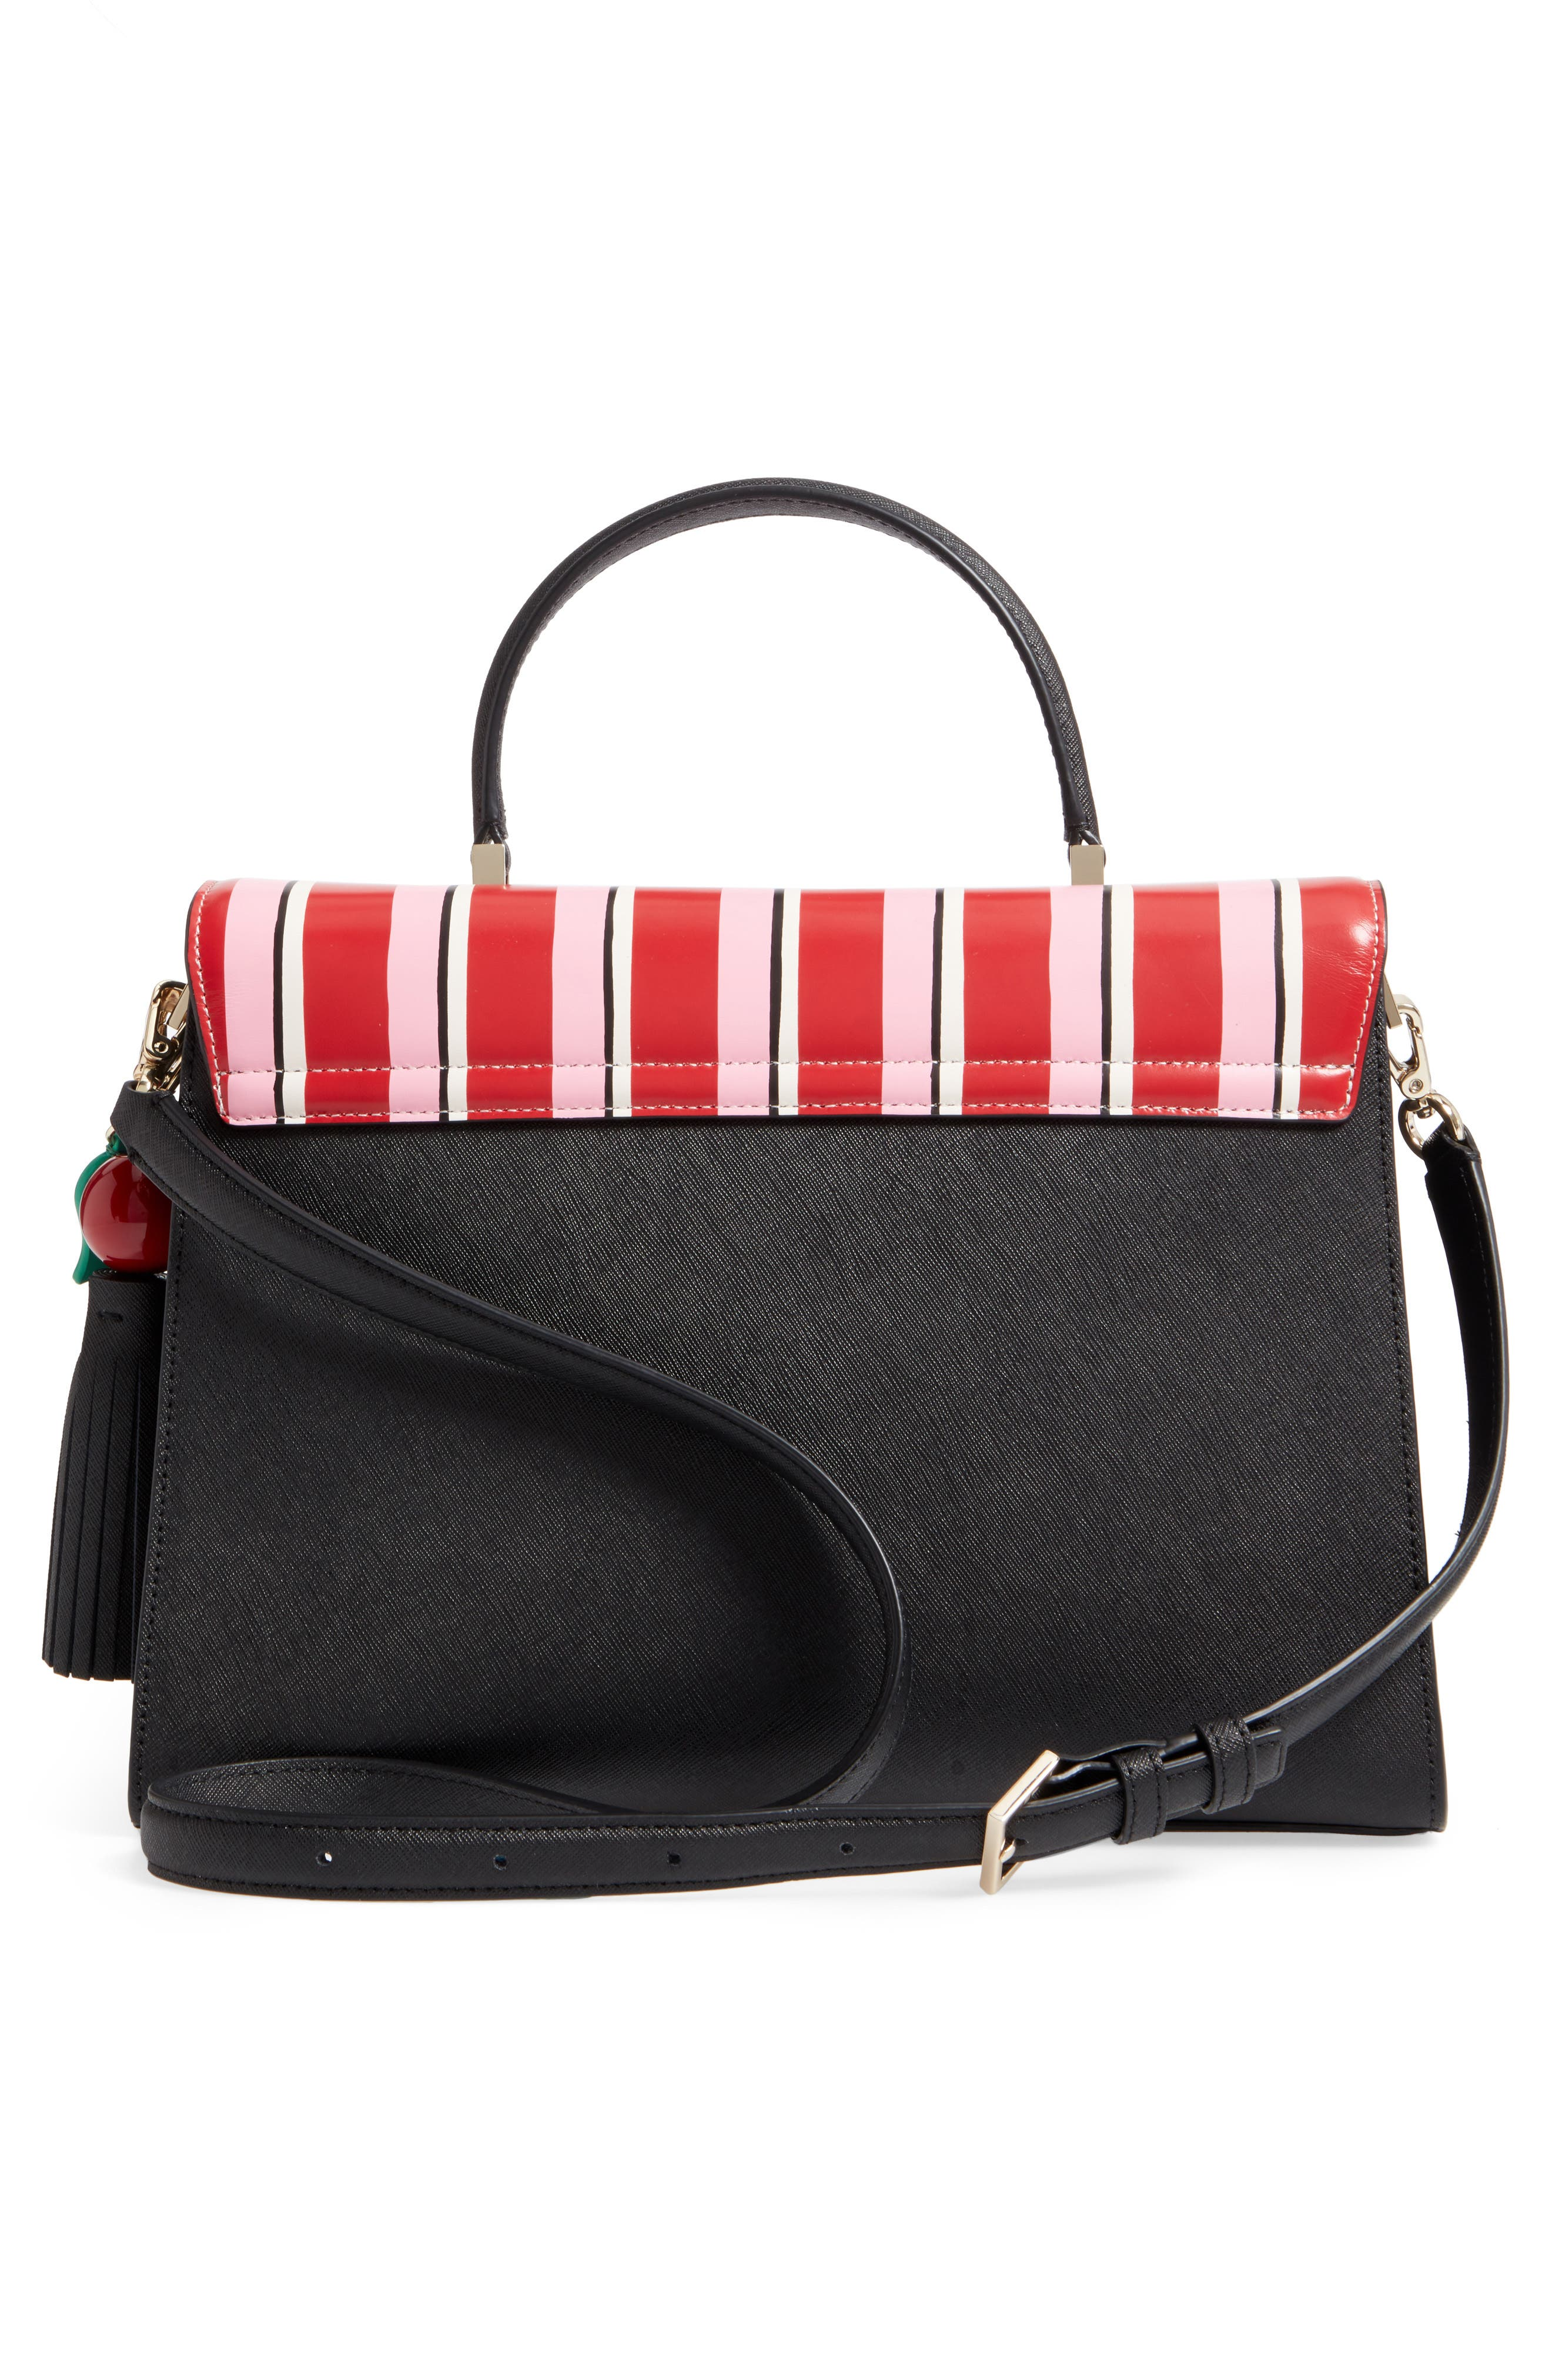 KATE SPADE NEW YORK,                             ma cherie - café leather satchel,                             Alternate thumbnail 3, color,                             001